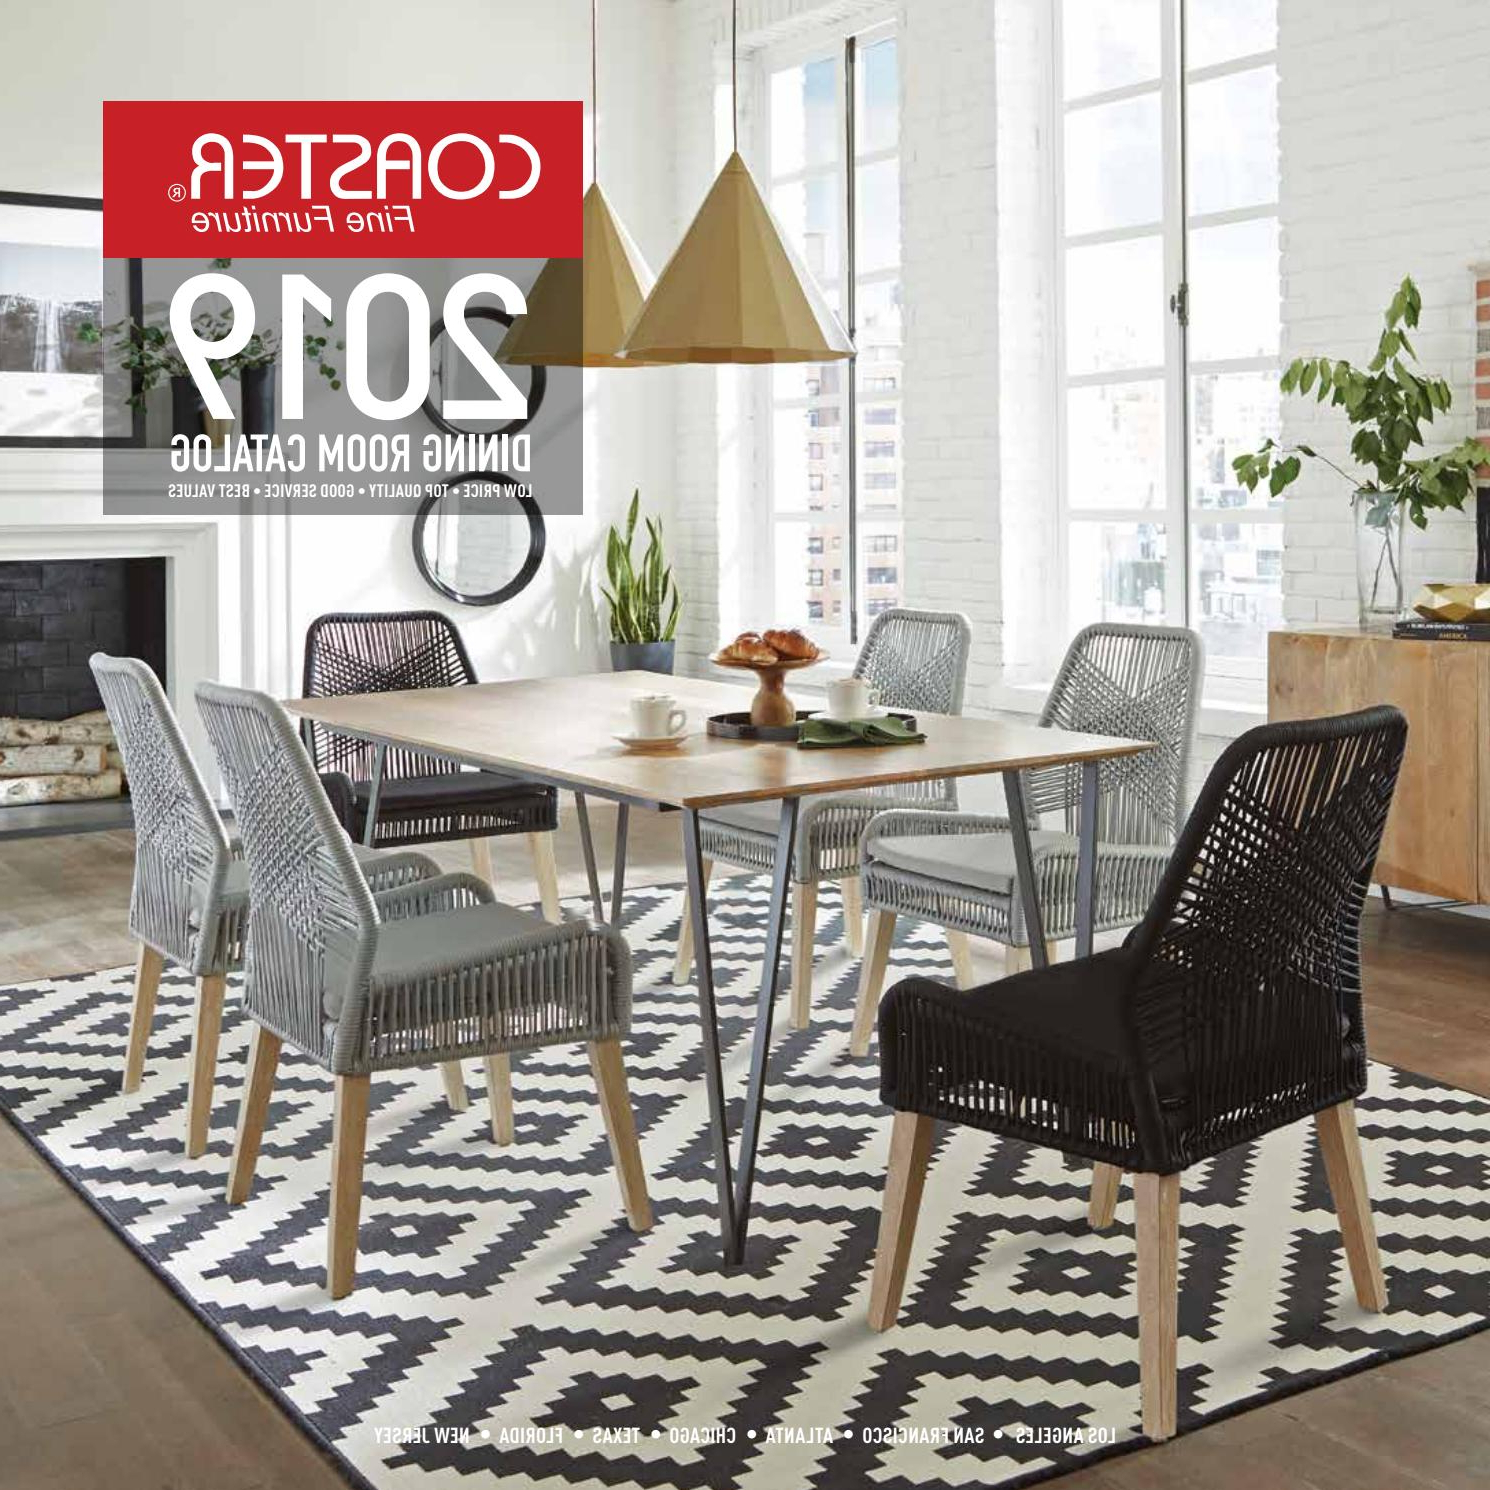 Newest Rustic Mid Century Modern 6 Seating Dining Tables In White And Natural Wood Intended For Coaster 2019 Dining Room Catalogcoaster Company Of (Gallery 24 of 30)